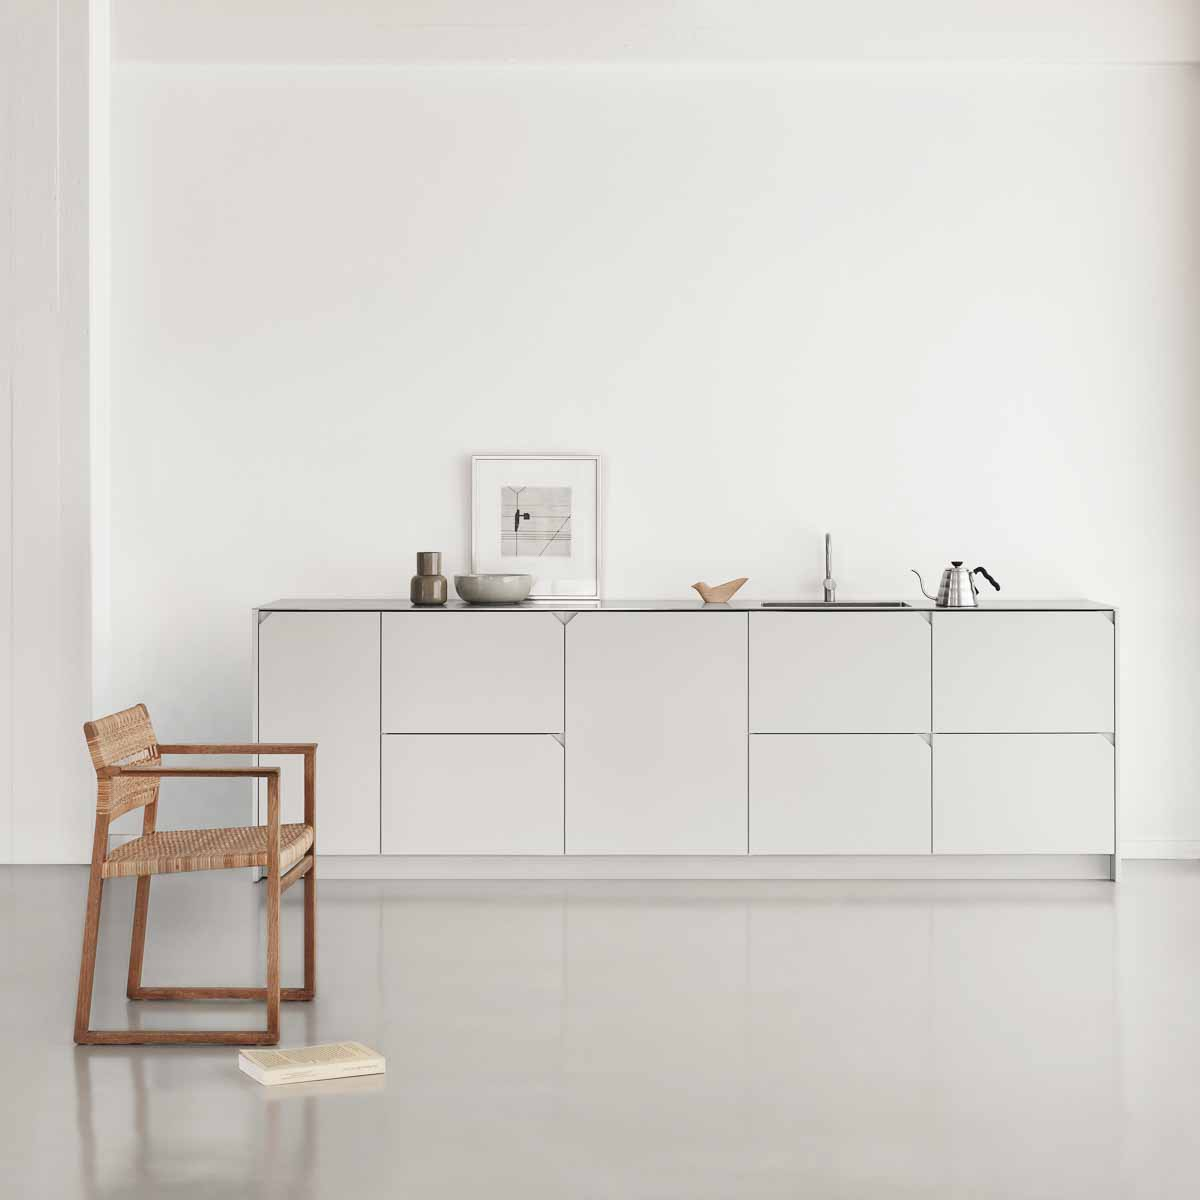 Kitchen Fronts By Reform Out Of Copenhagen Creme Berlin Berlin